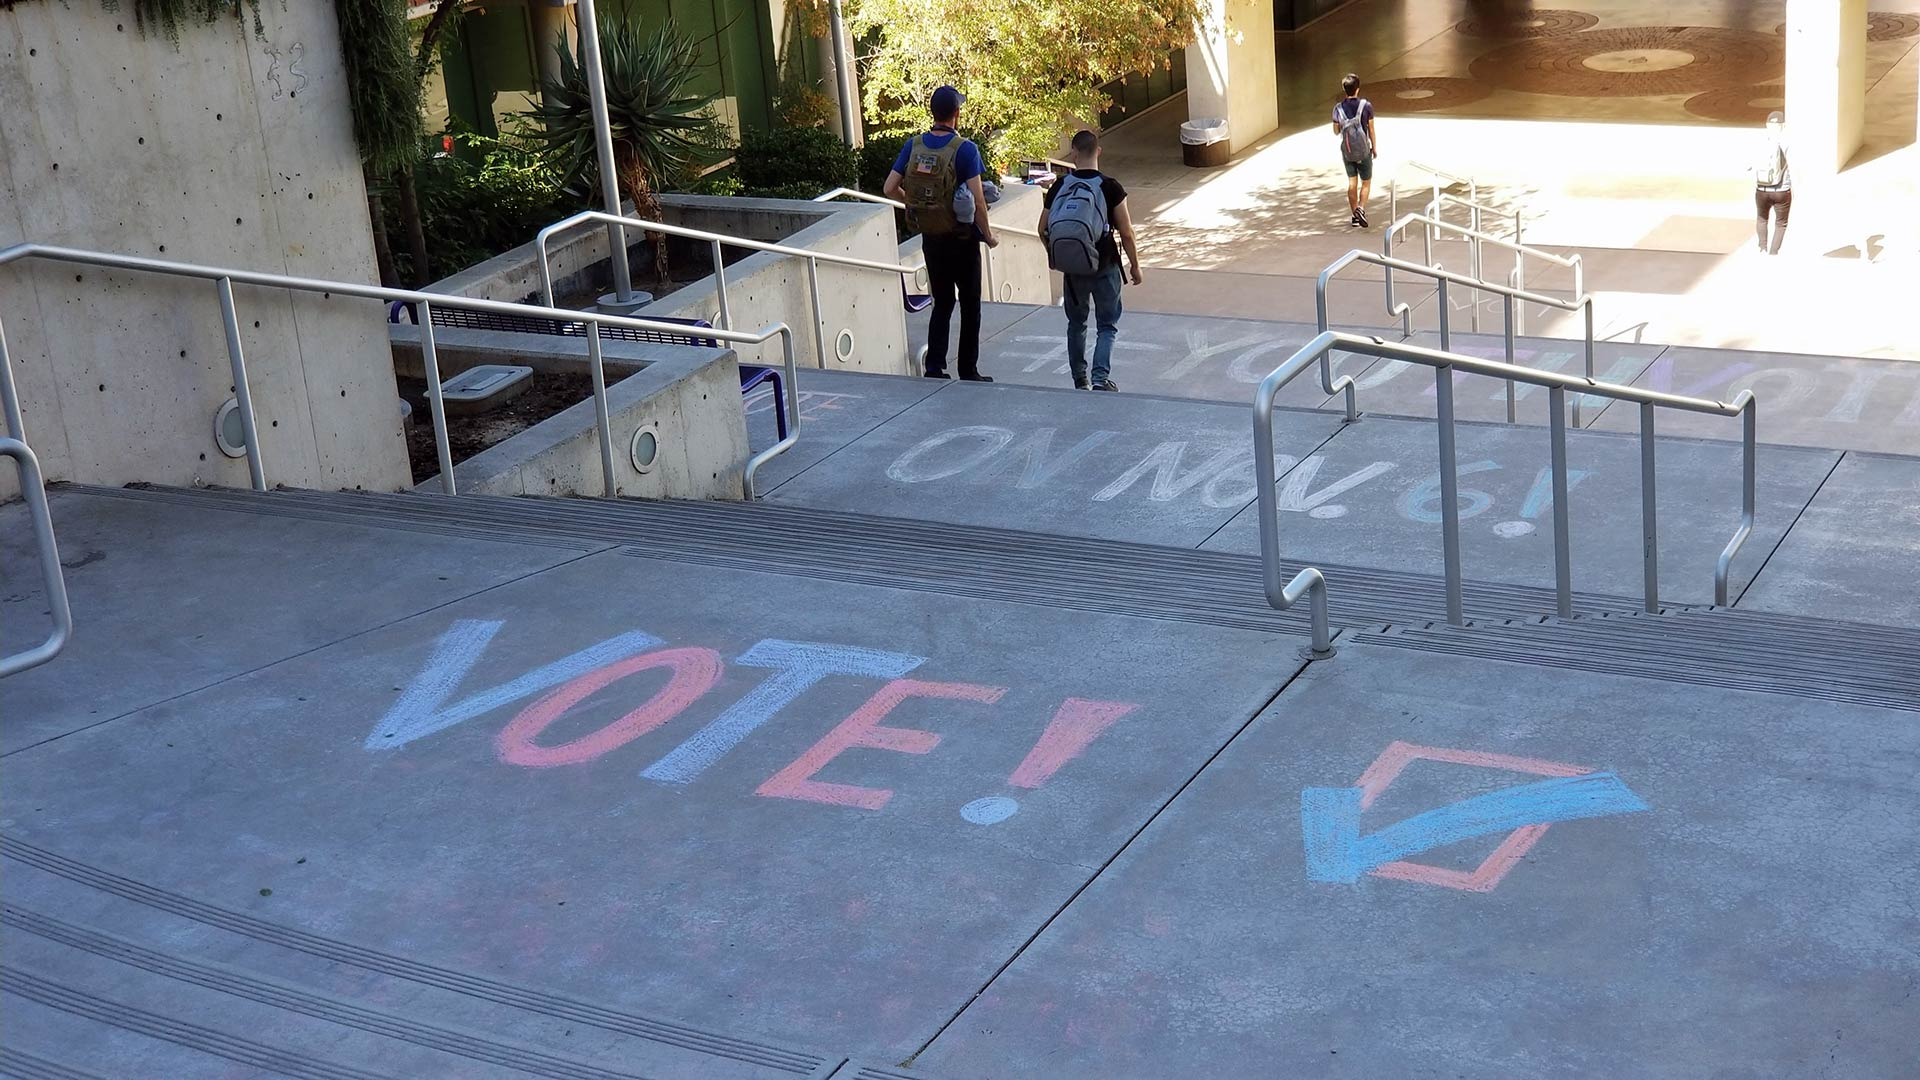 Chalk art on the stairs heading to the Integrated Learning Center on the University of Arizona campus encourages young people to vote in the upcoming election.